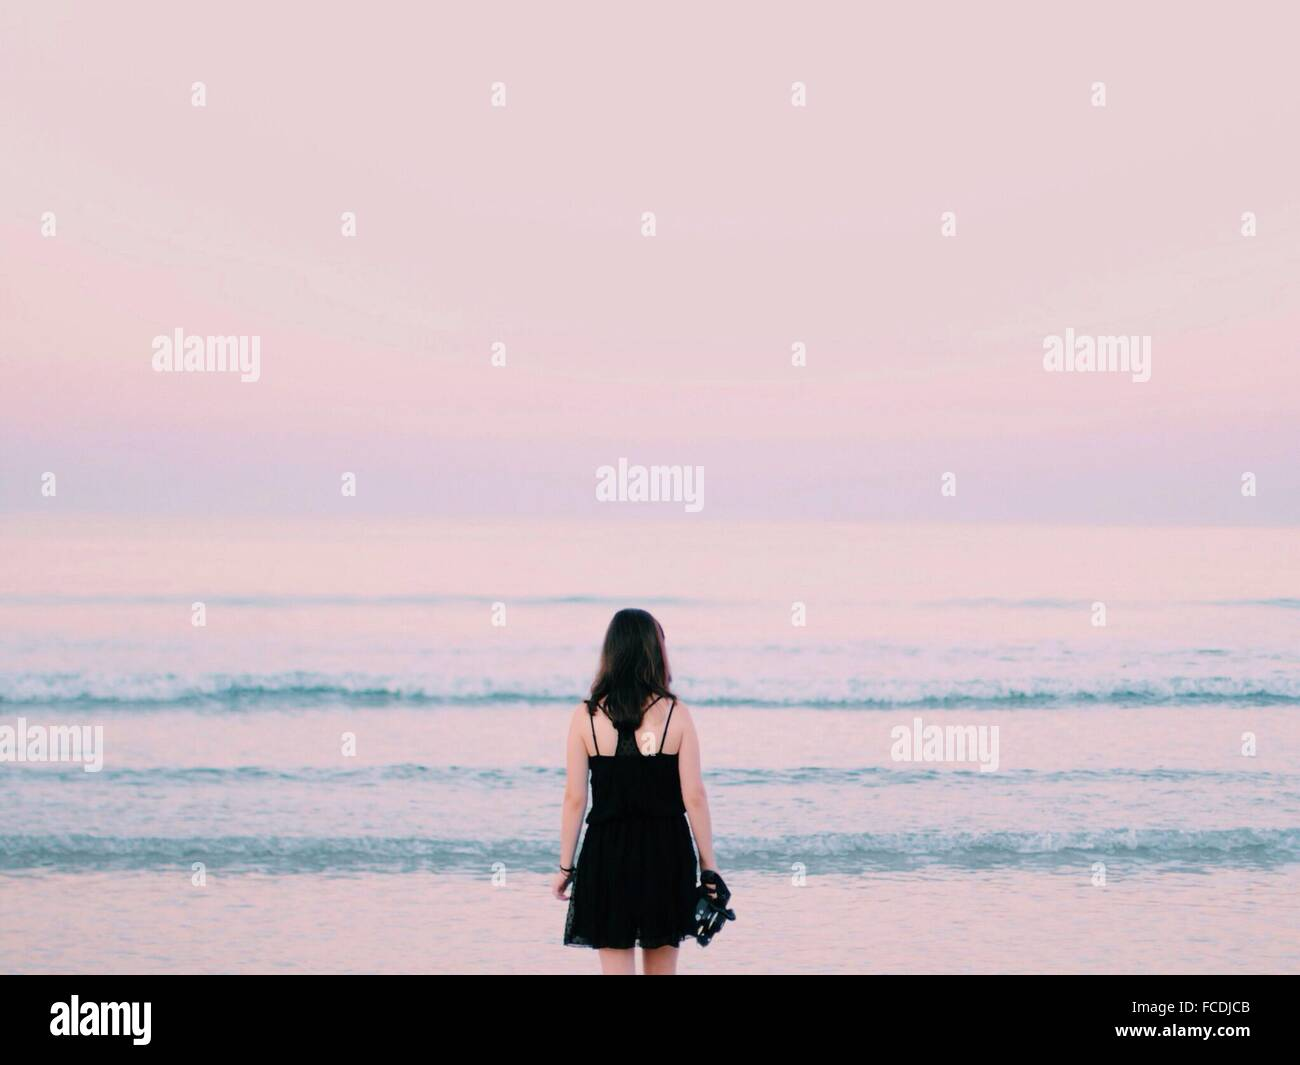 Rear View Of Woman Overlooking Calm Sea - Stock Image